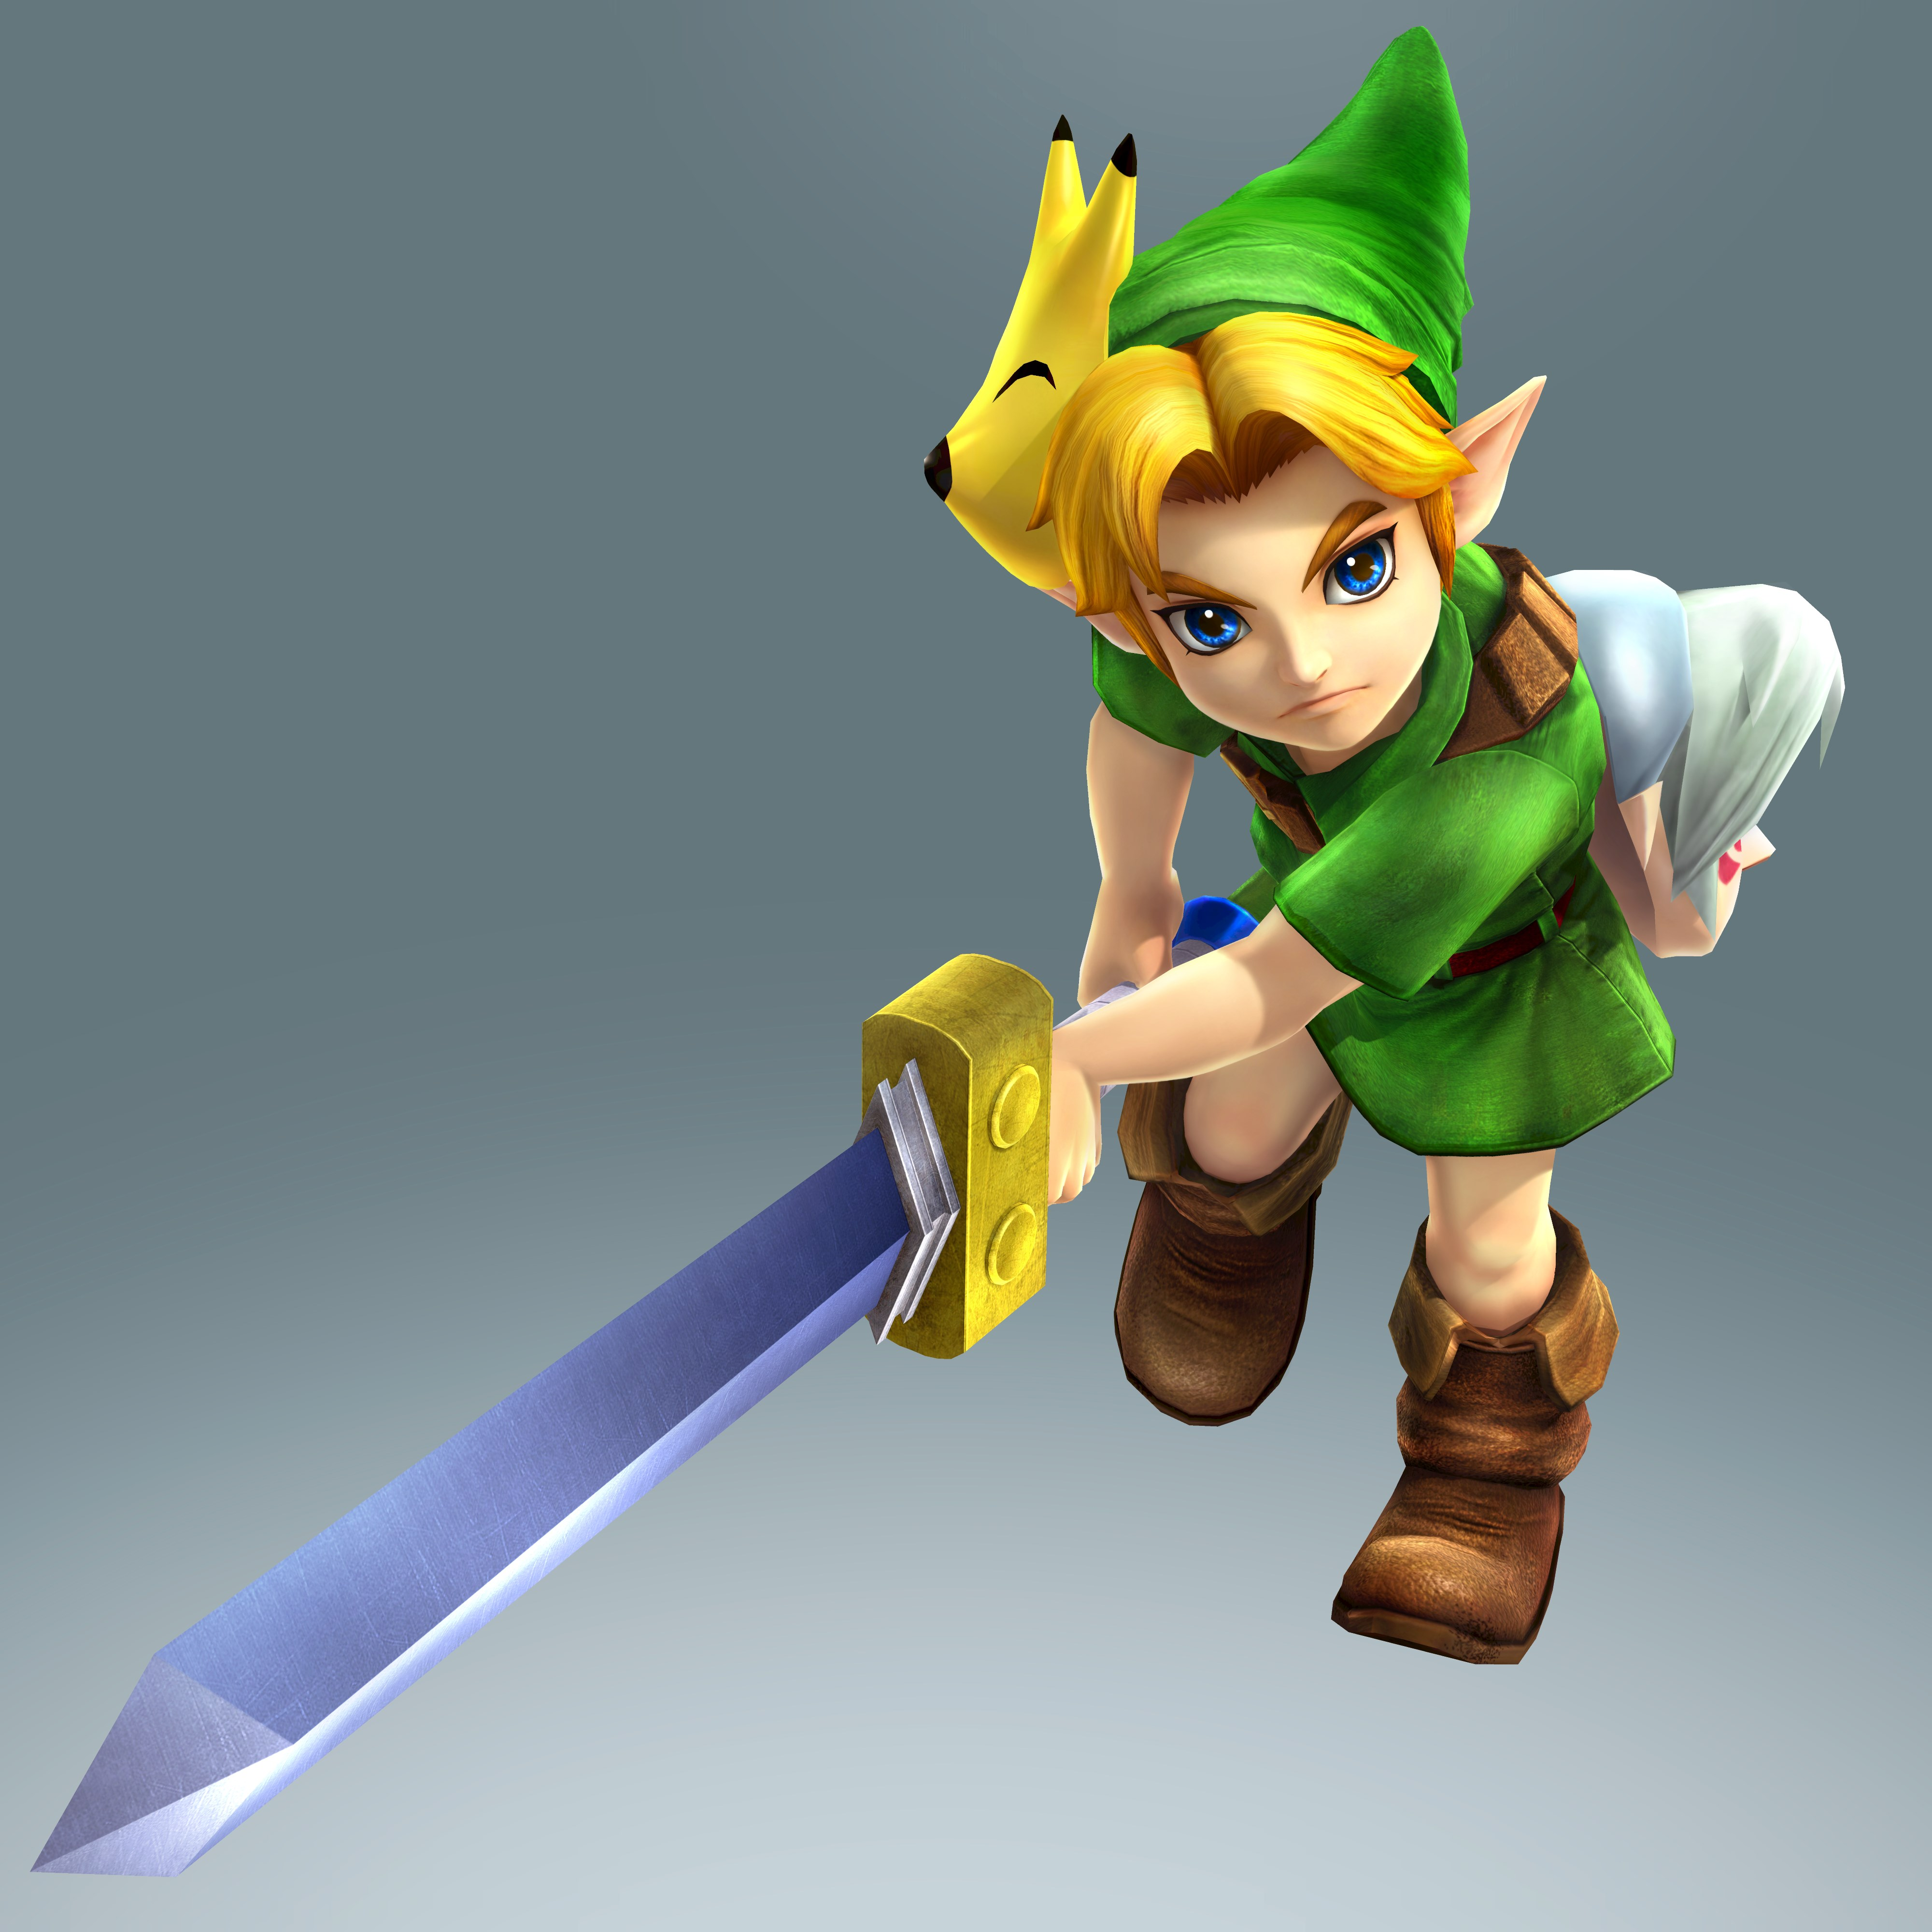 New Hyrule Warriors Artwork and Screenshots for the Majora's Mask ...